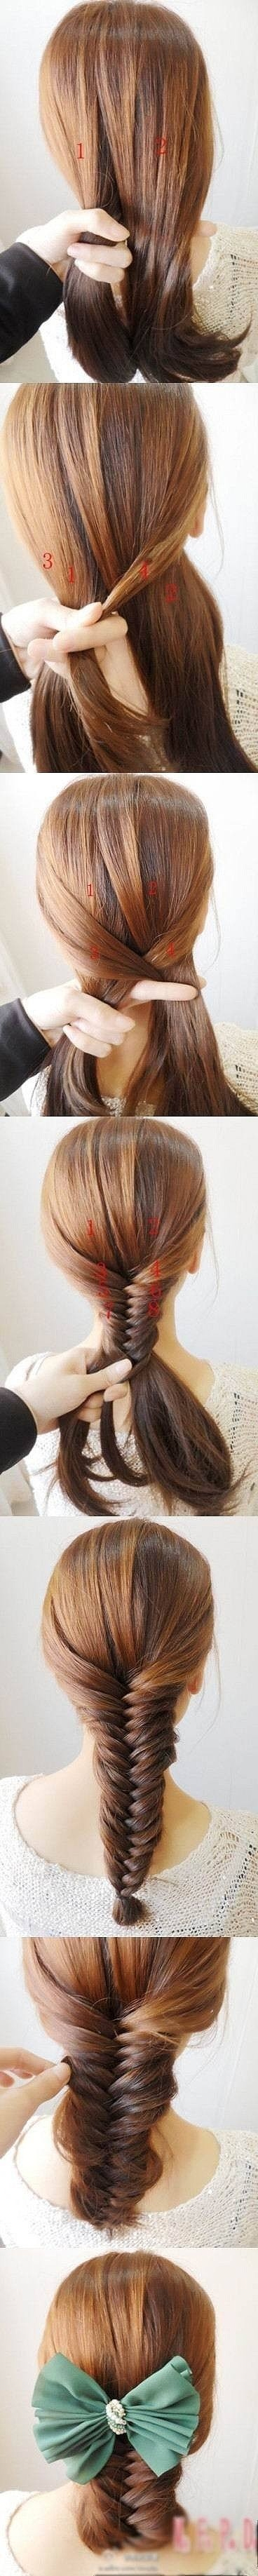 fishtail braid DIY of course I found something showing me how to do it now that I chopped all my hair off.